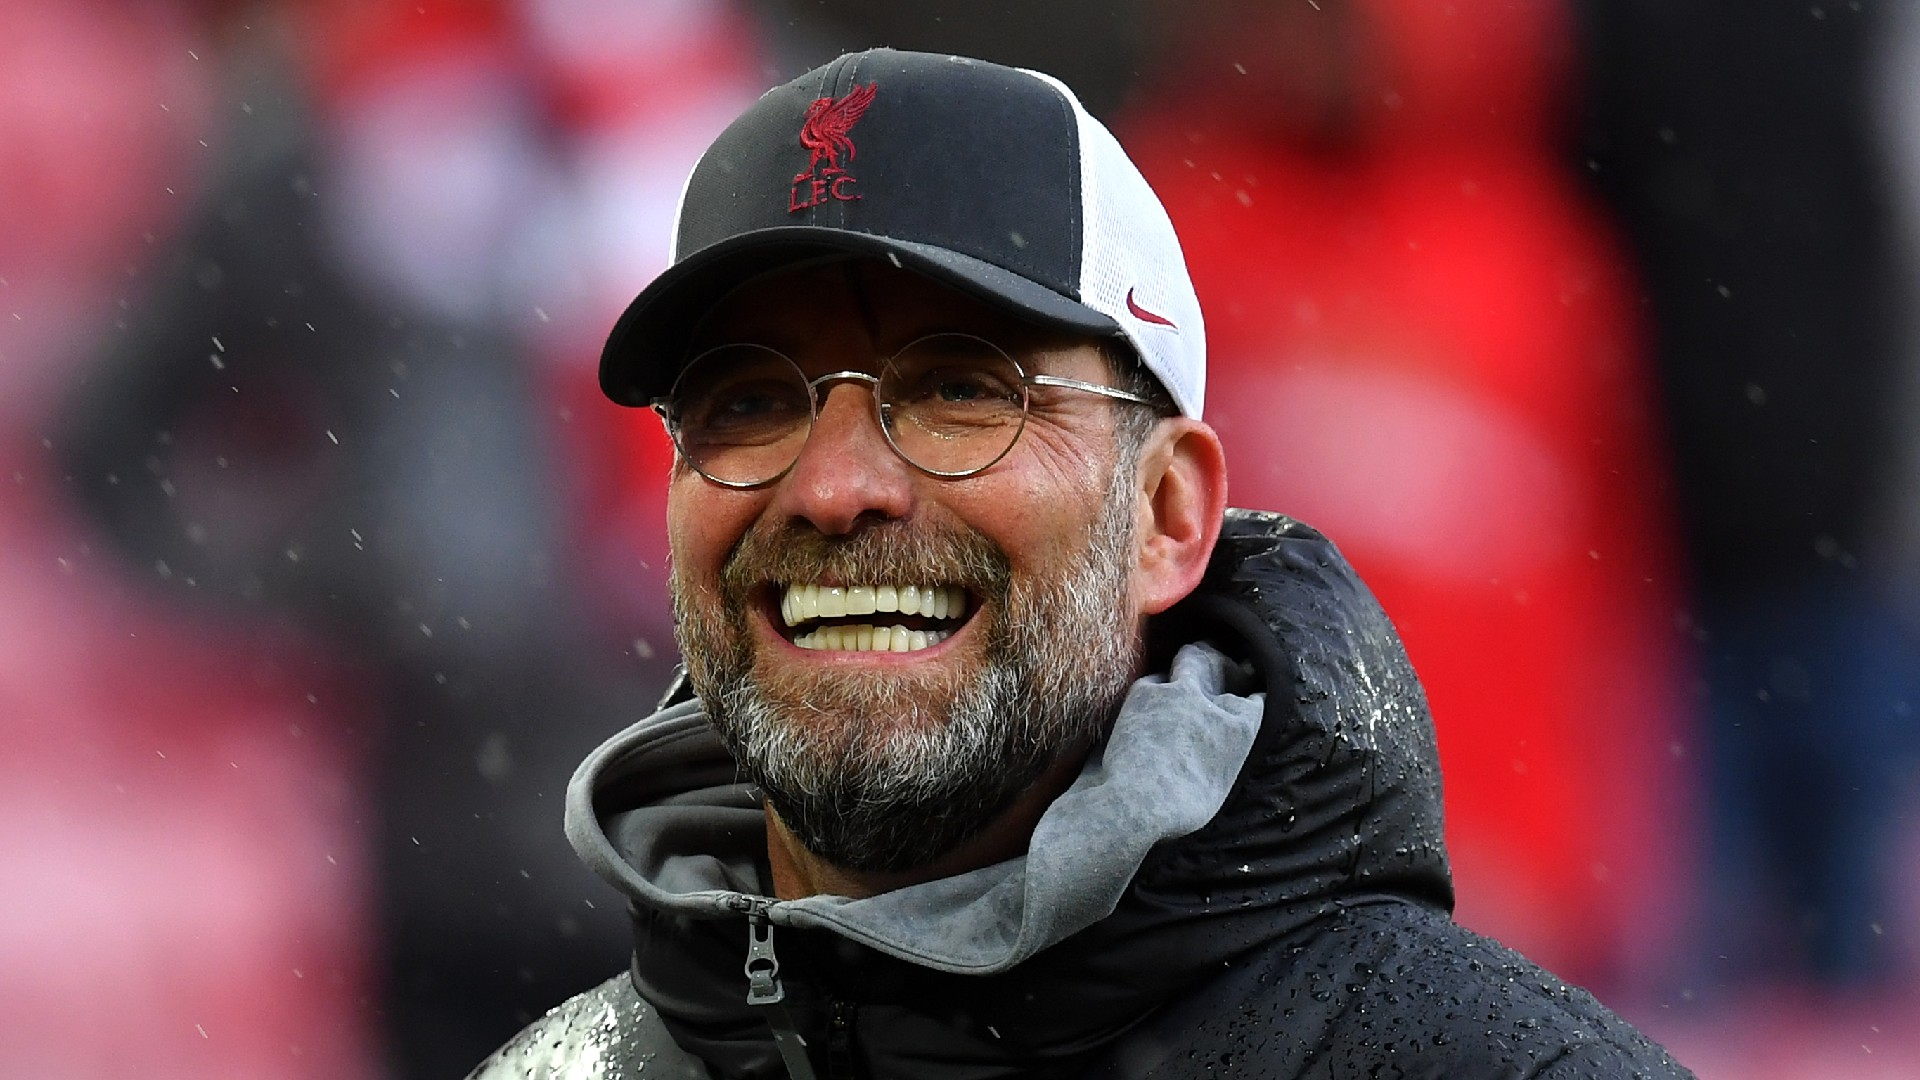 'We don't want more players' - Klopp insists he is happy with Liverpool squad